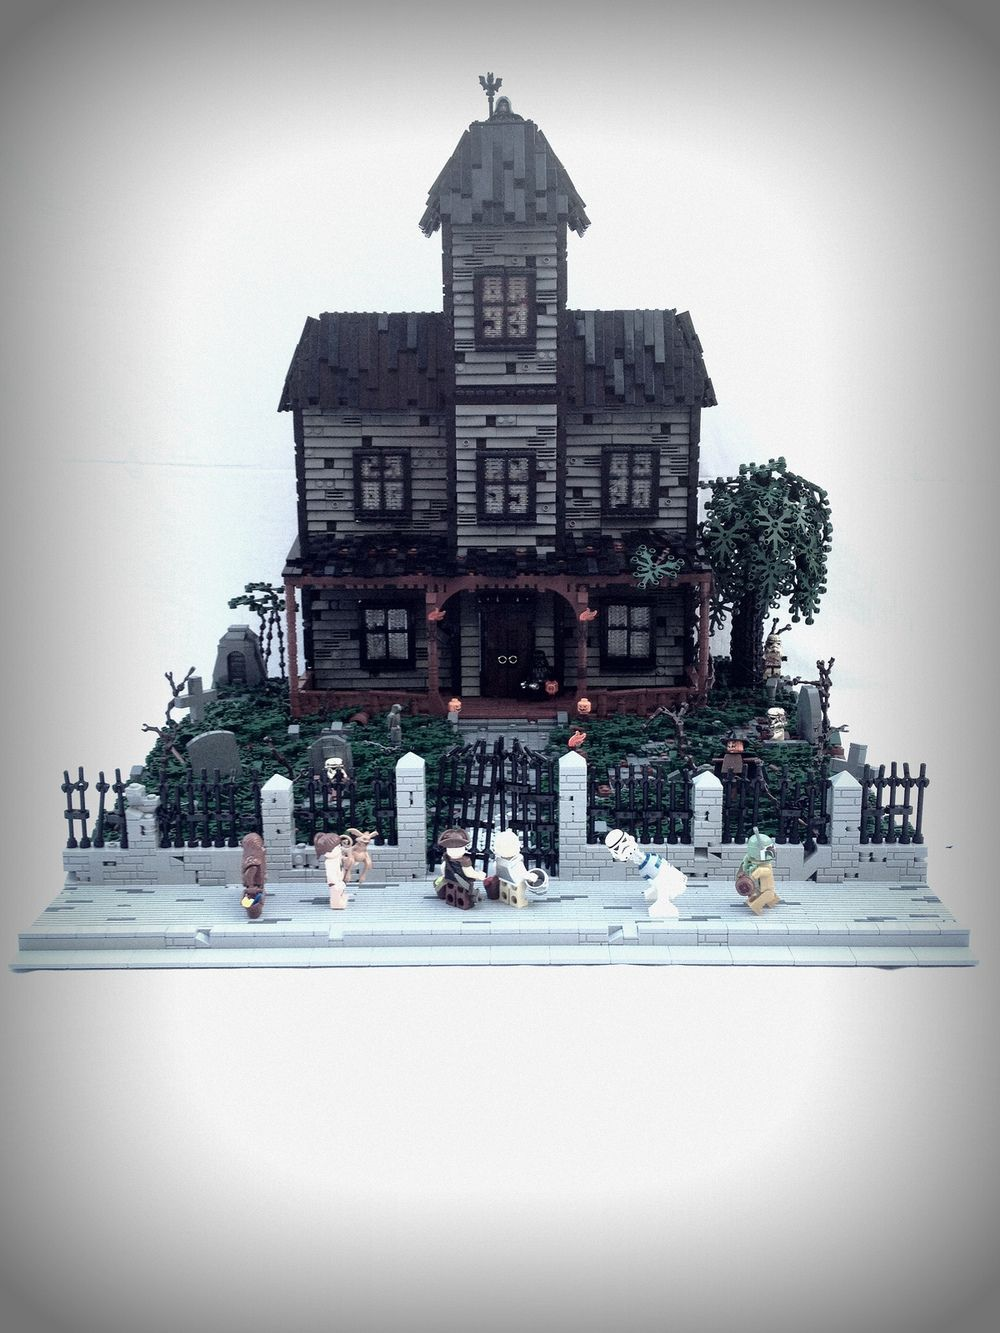 Yes The Monster Fighters Haunted House Is Nice I Even Gave It Five Out Of Five Nerdlys In My Latest Epi Lego Haunted House Star Wars Halloween Lego Halloween